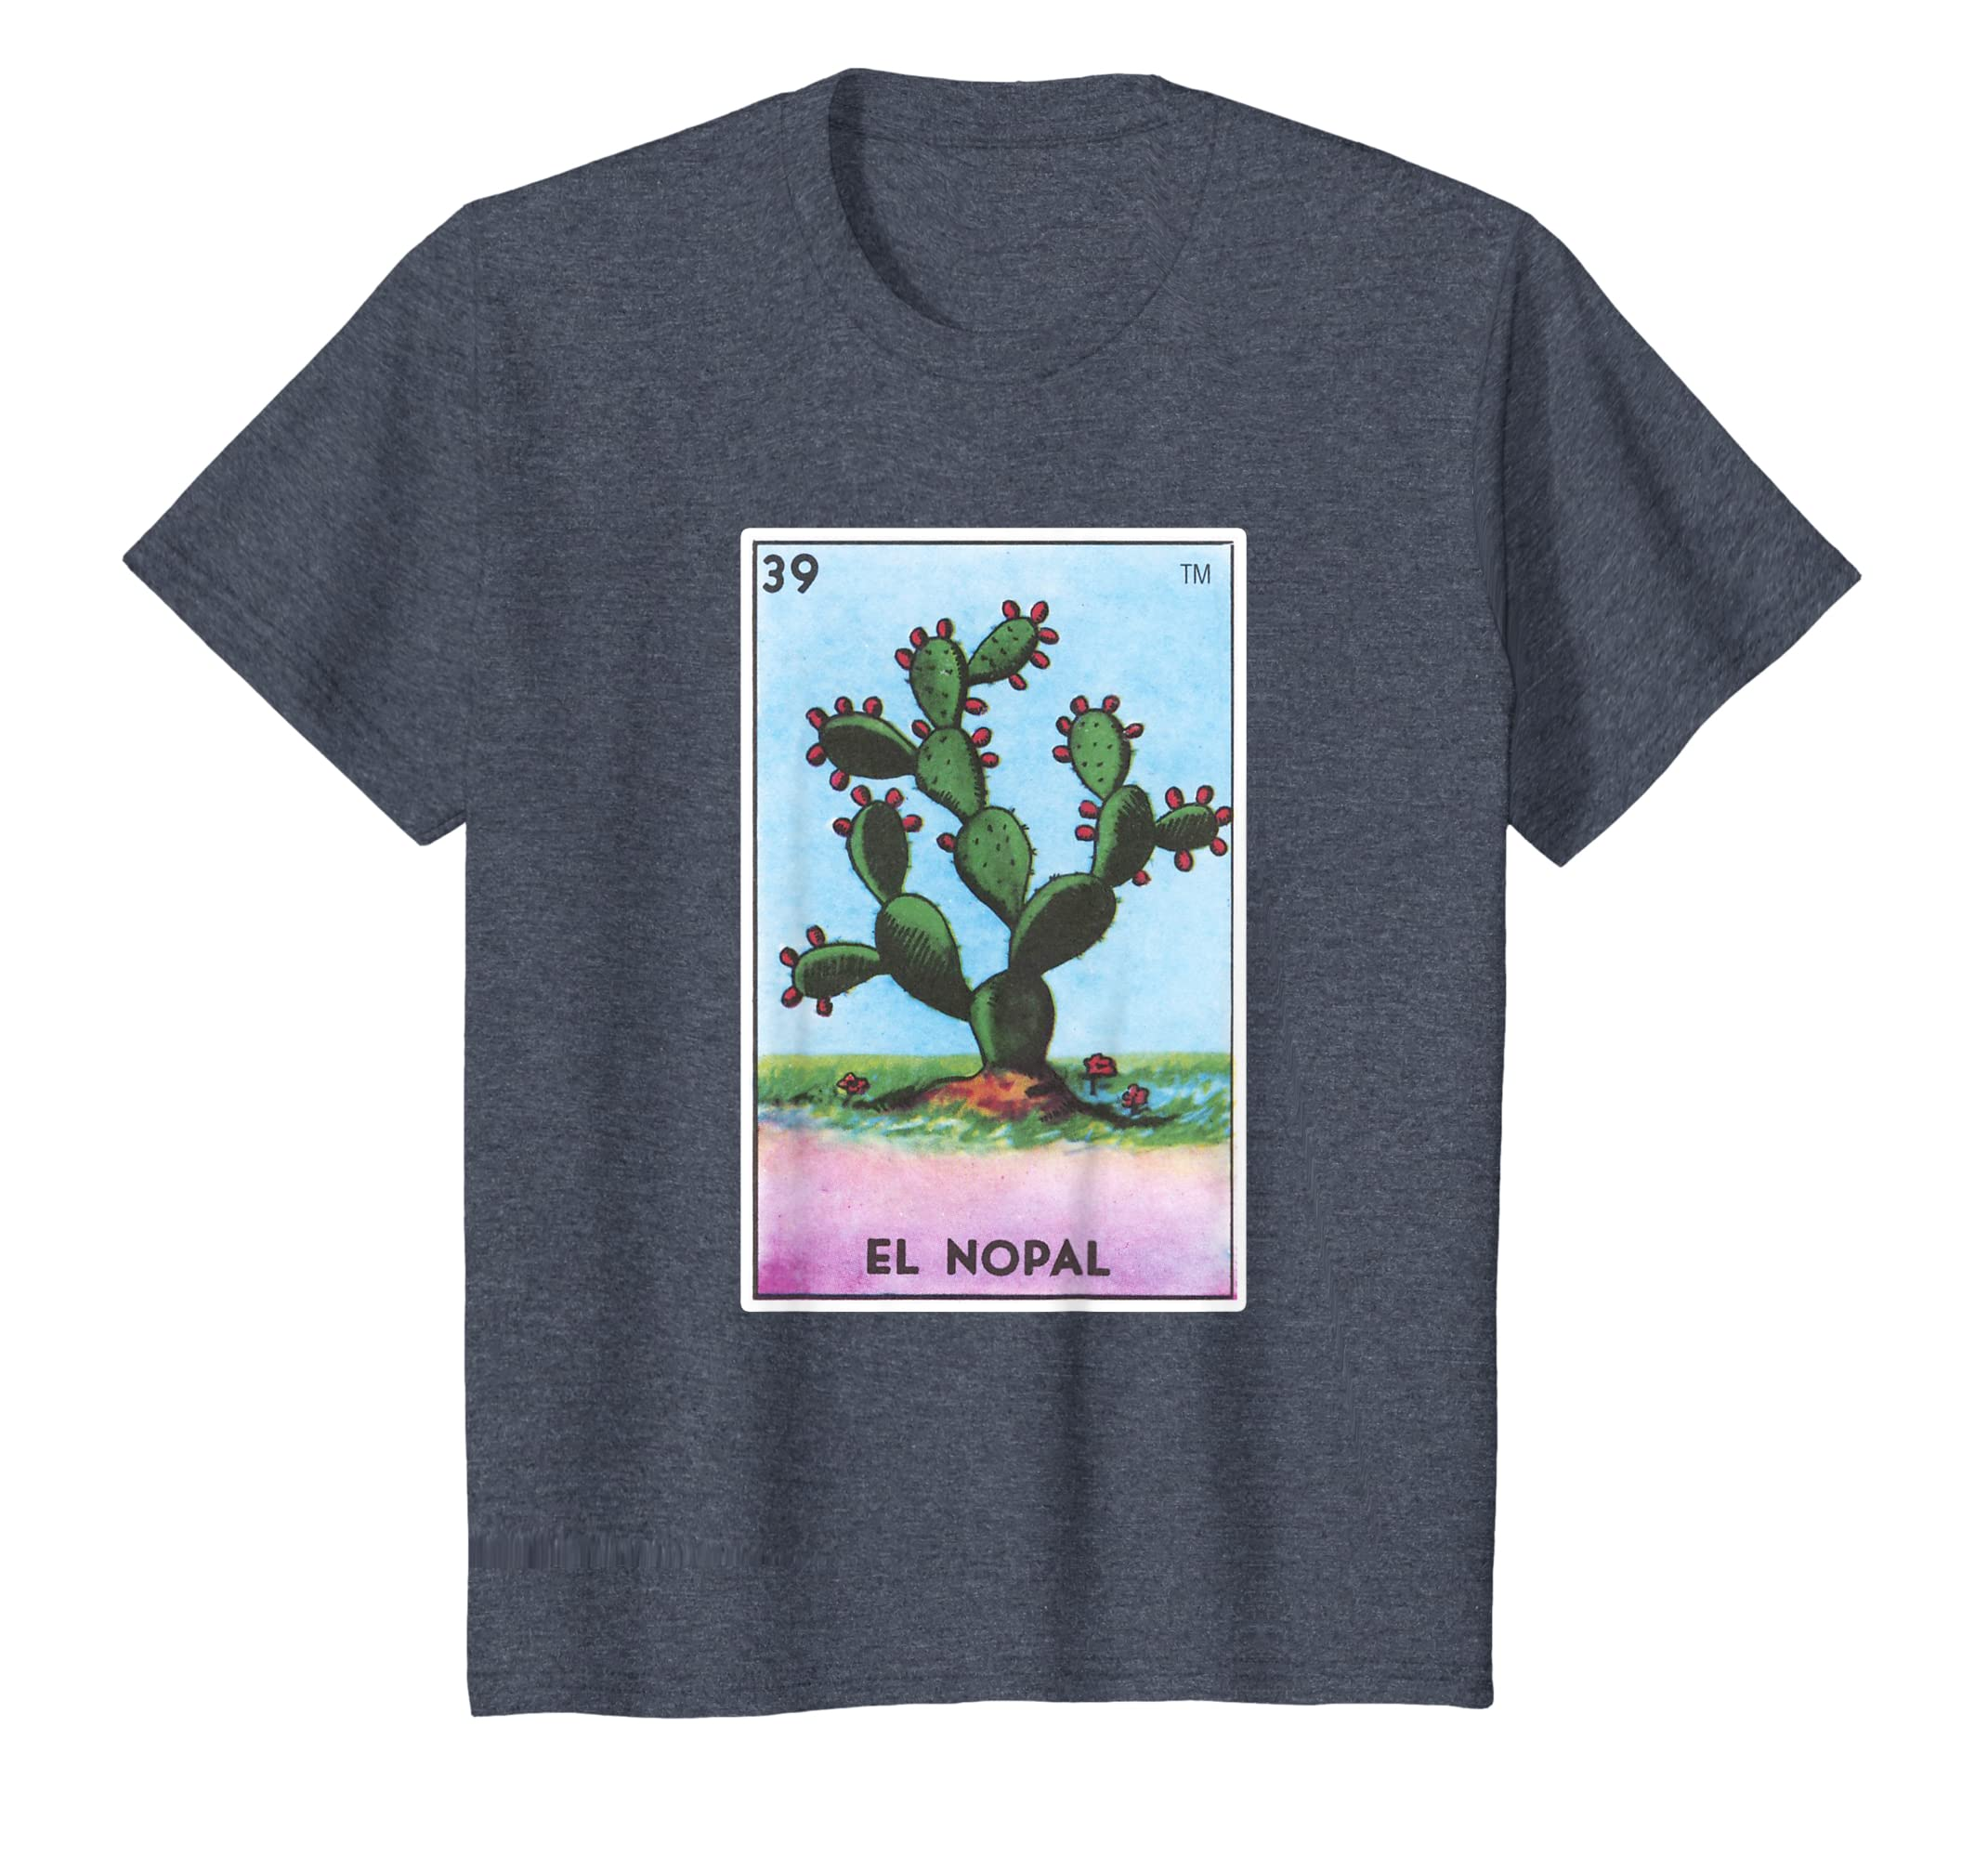 9d30a1f60 Amazon.com: El Nopal Card Loteria Shirt Mexican Prickly Pear Cactus:  Clothing